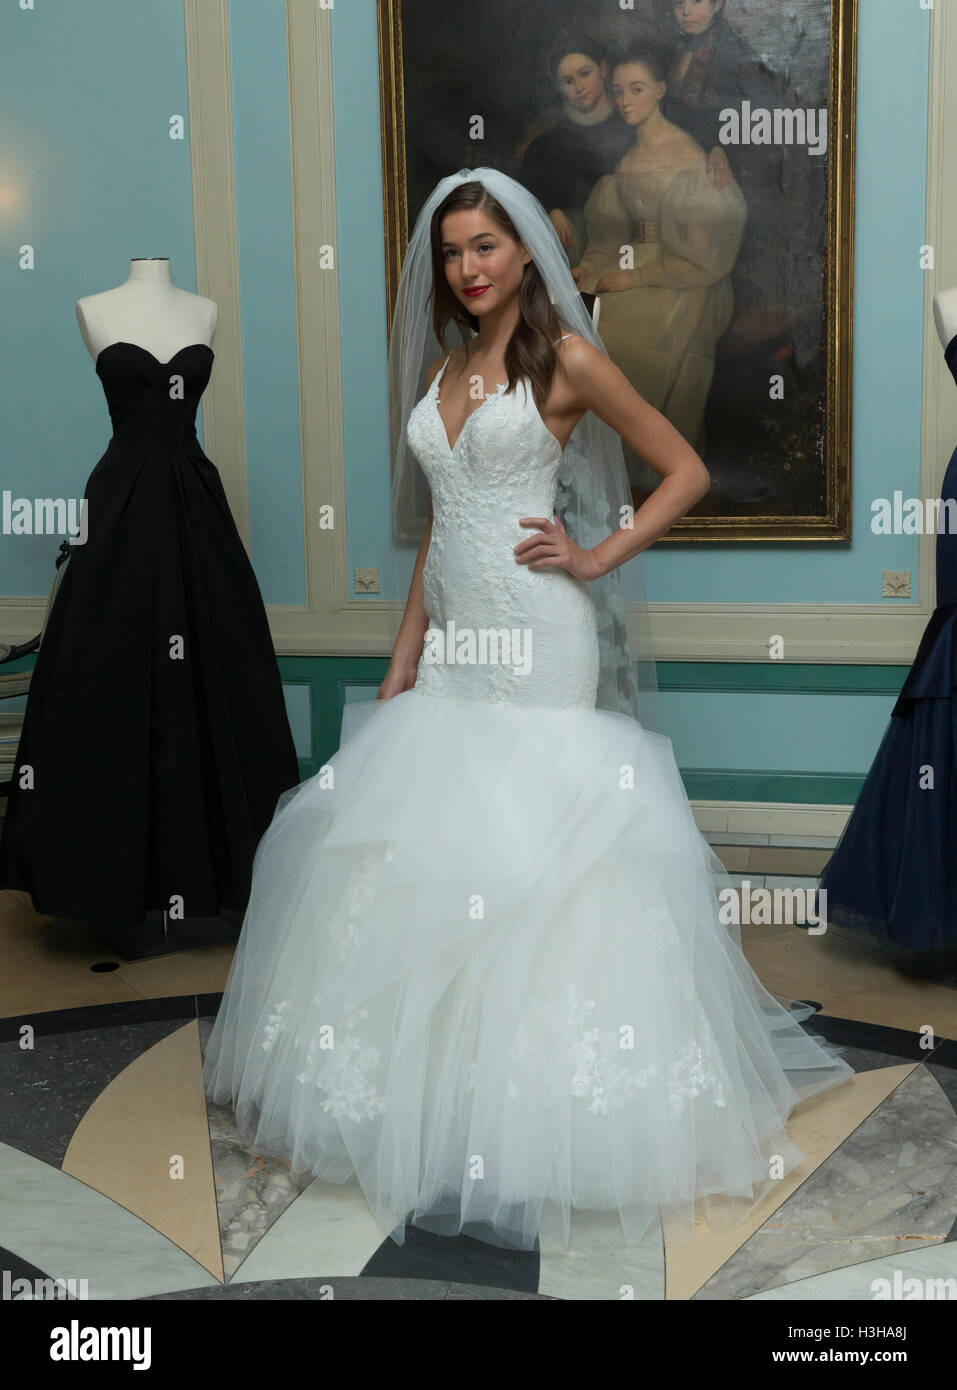 Enchanting Usa Wedding Dresses Inspiration - All Wedding Dresses ...